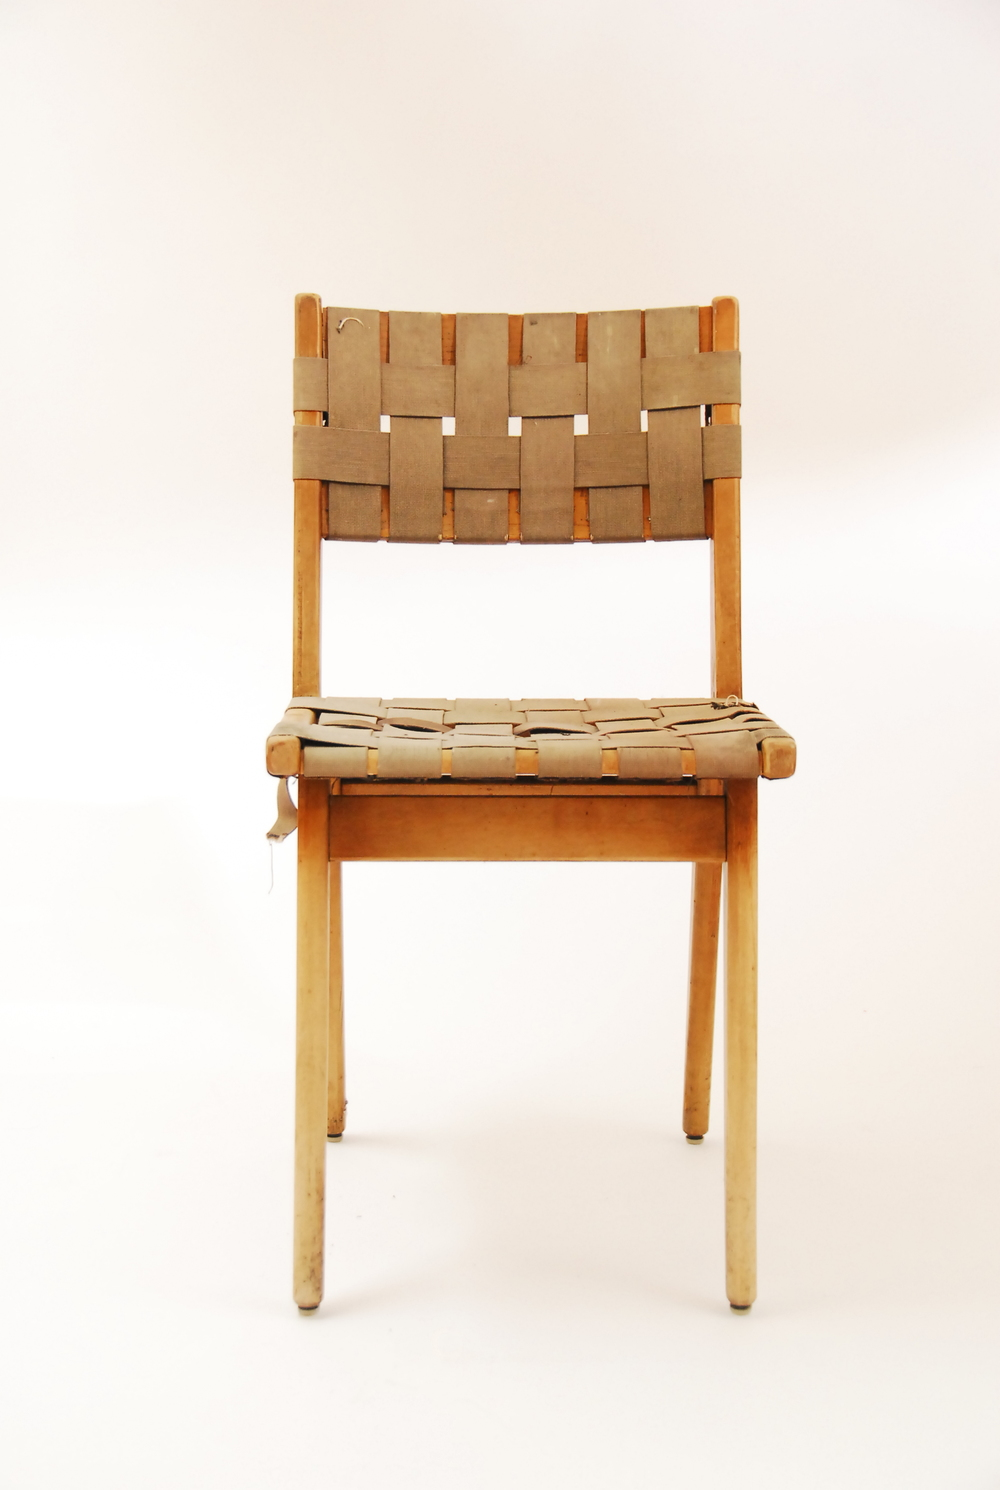 studio_nicco_chair_1338.JPG